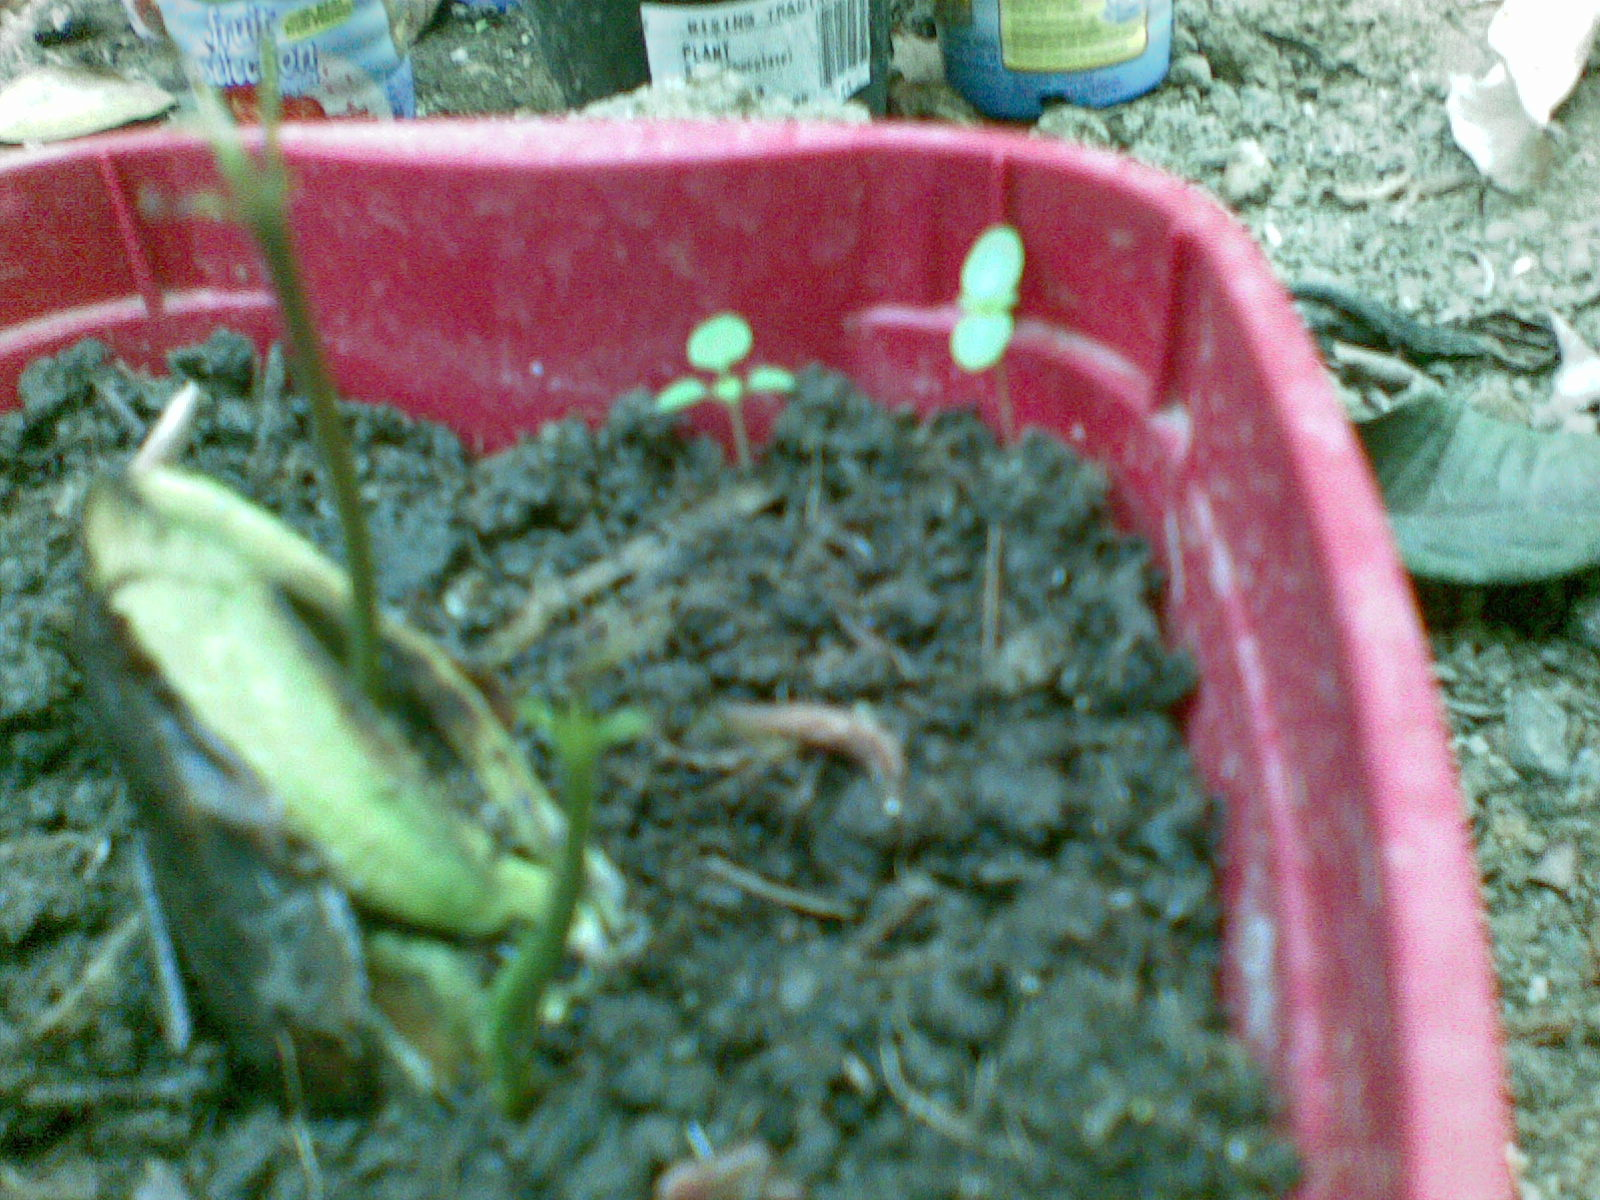 Mental Notes: How to Germinate a Mango Seed